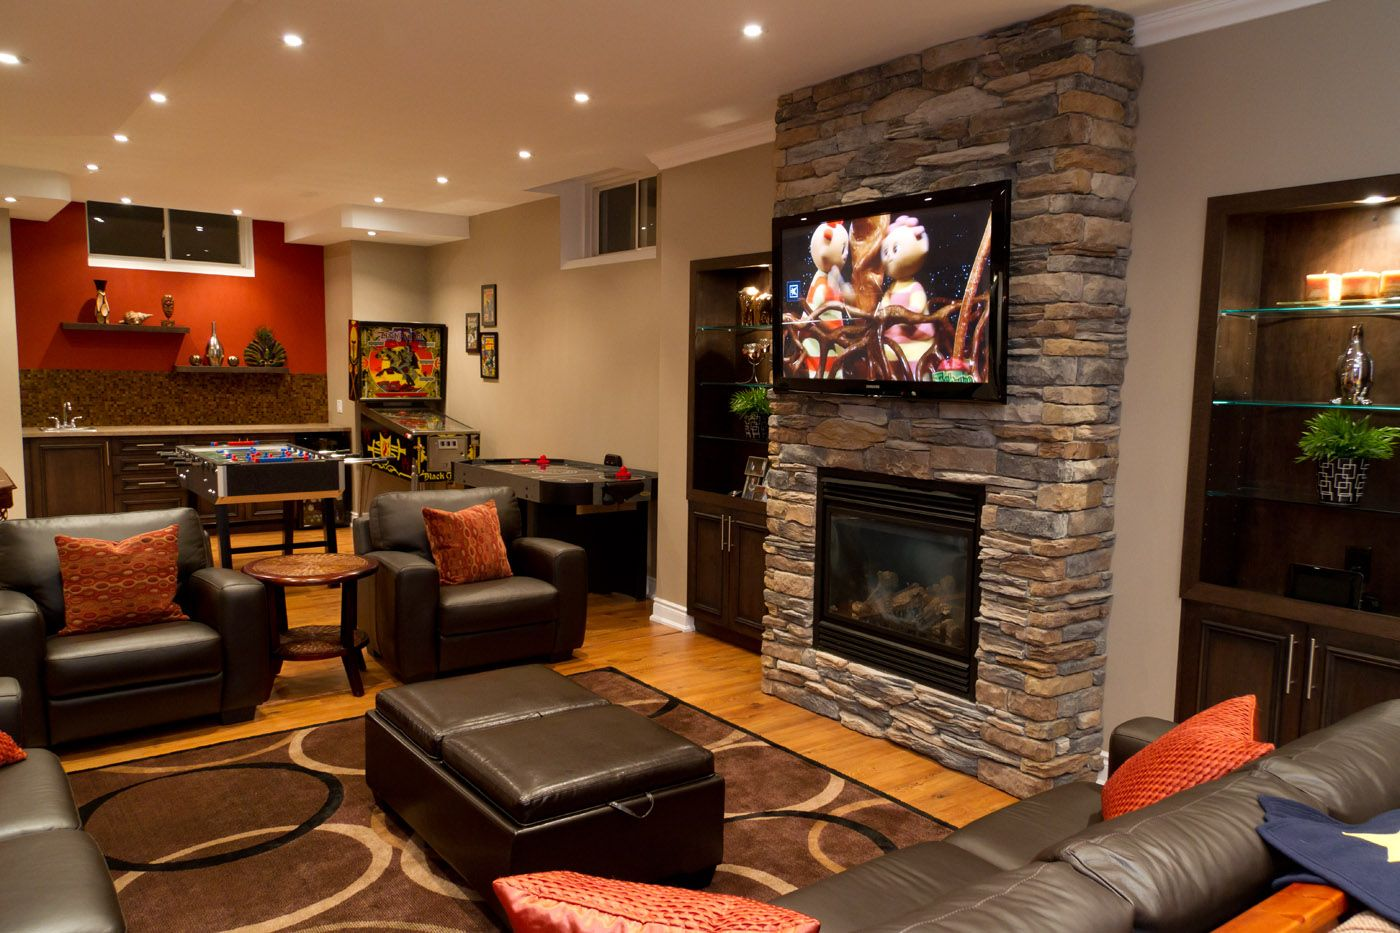 Basement Living Room Designs Impressive Basement Playroom Ideas  Finished Basement Basement Renovations Design Decoration